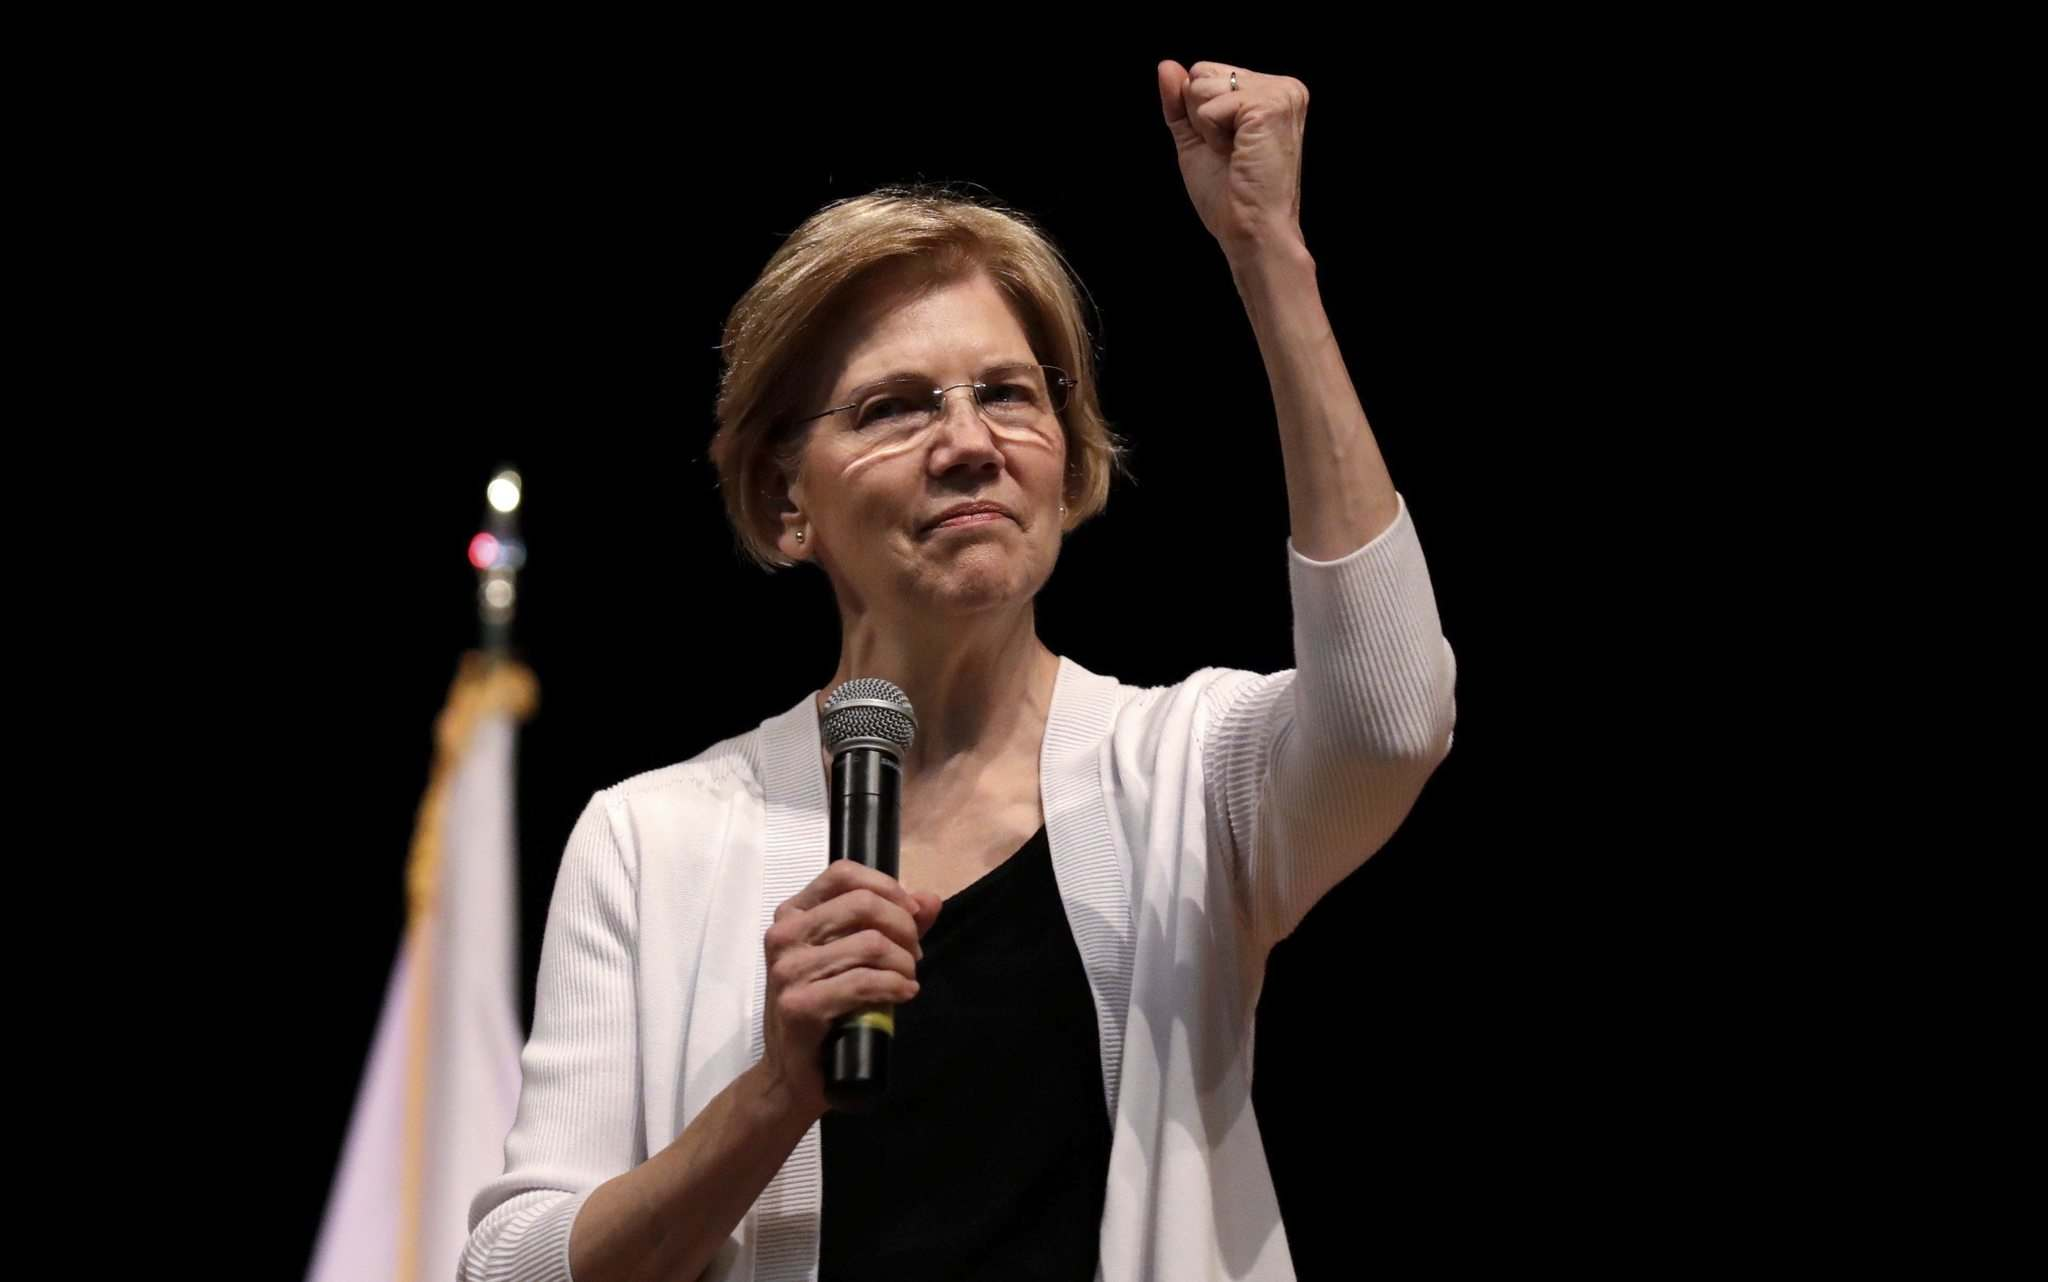 Elizabeth Warren, a Democratic senator from Massachusetts, released results of a DNA test that indicated she has distant Native American ancestry.